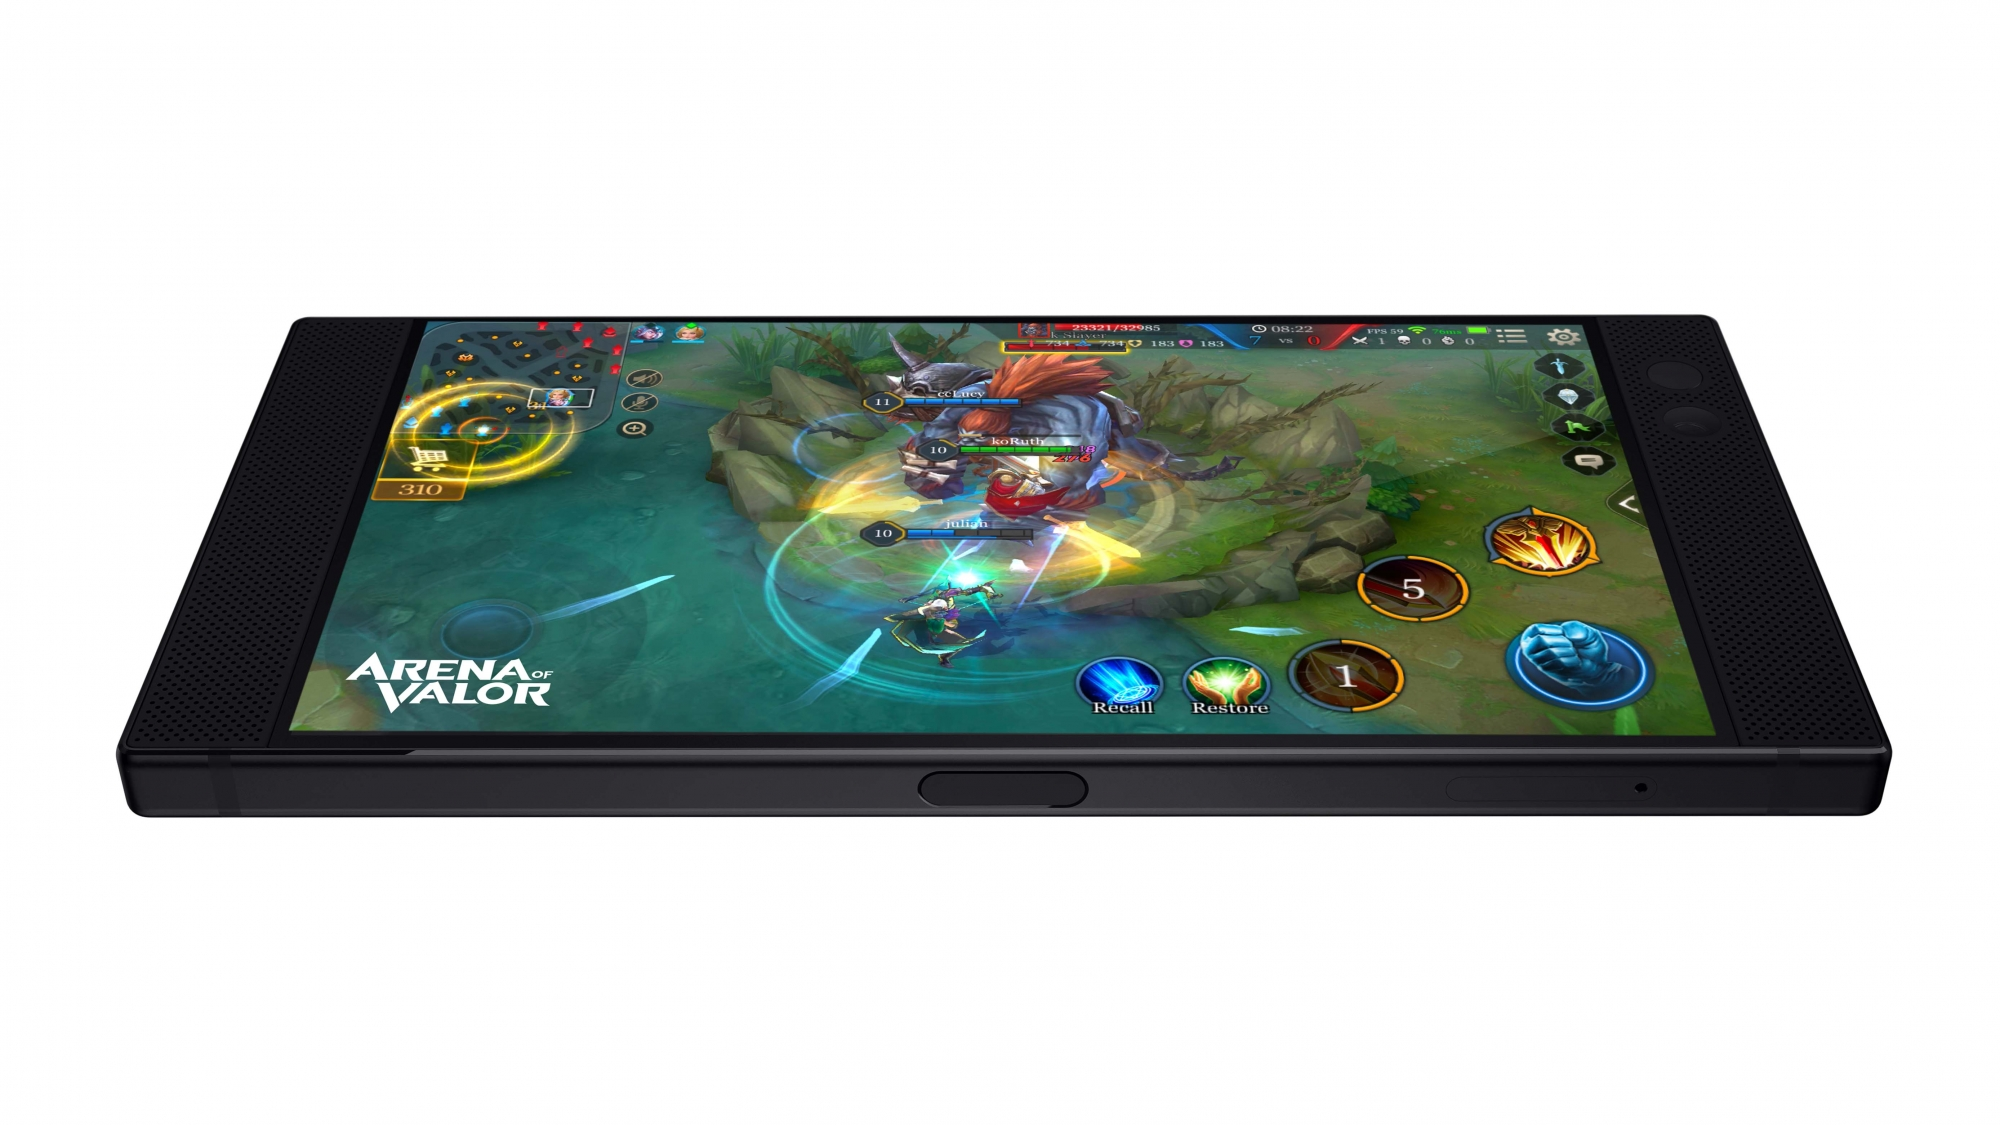 Razer-Phone-Games-Arena-of-Valor-01